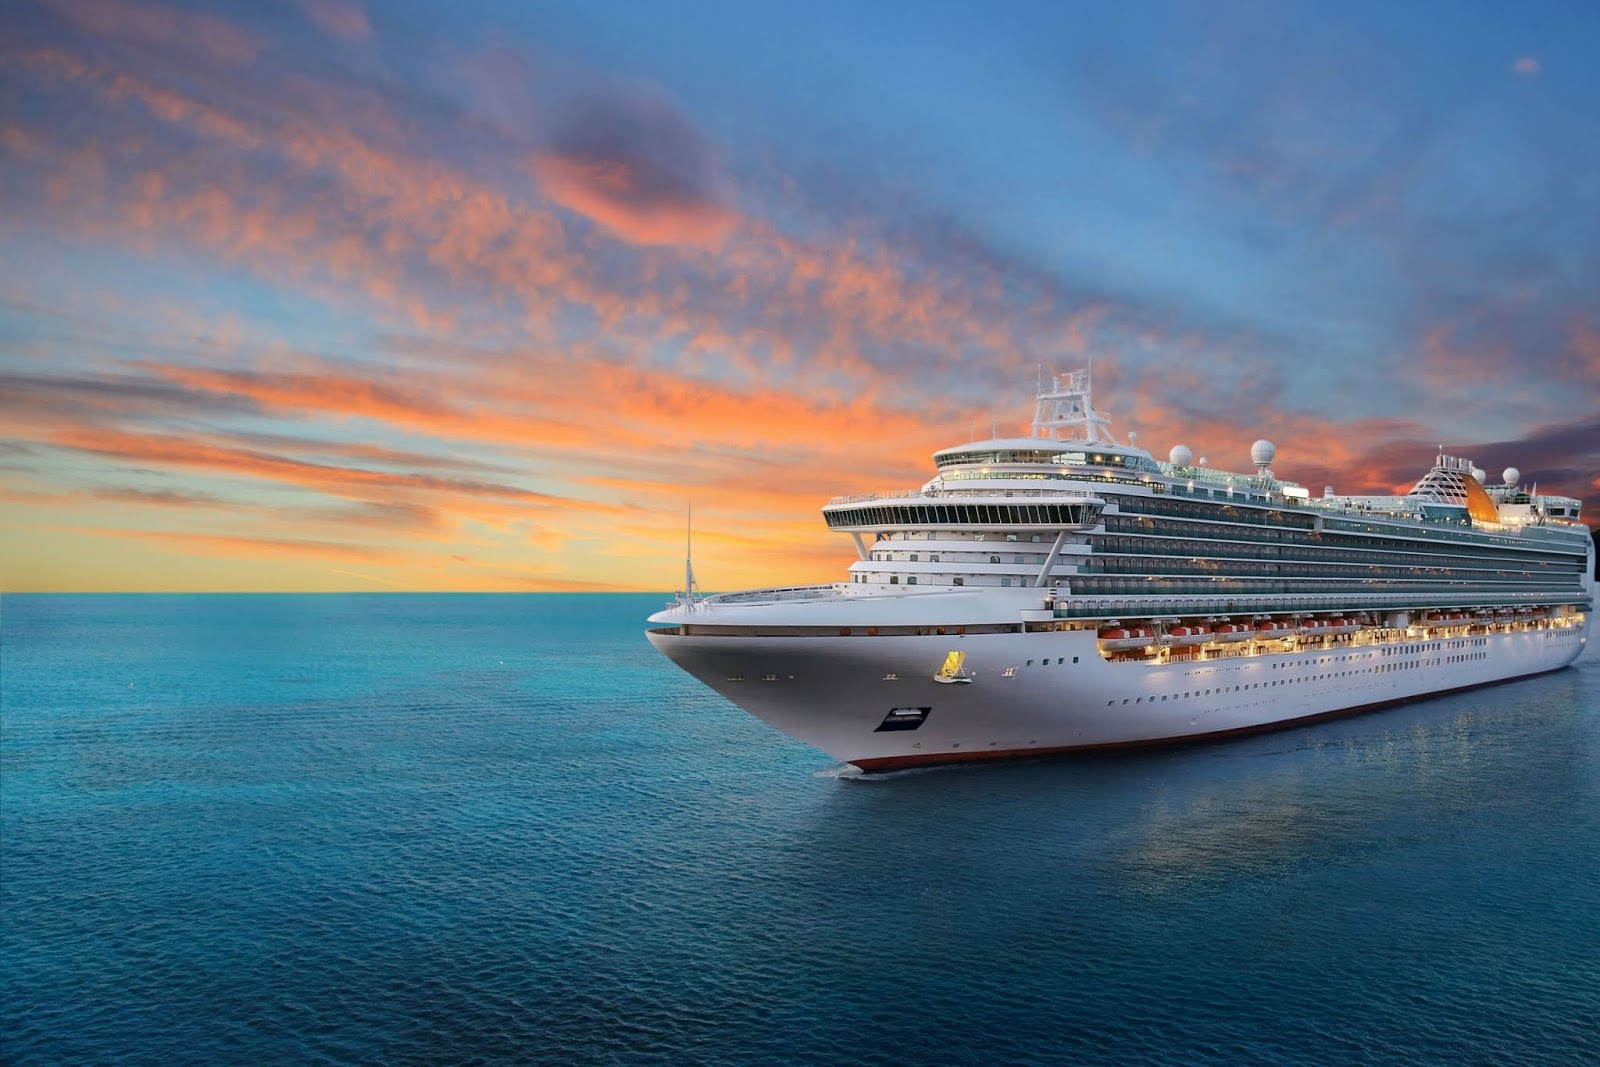 Diamond CBD is offering one lucky winner the chance to win the vacation getaway cruise of a lifetime.